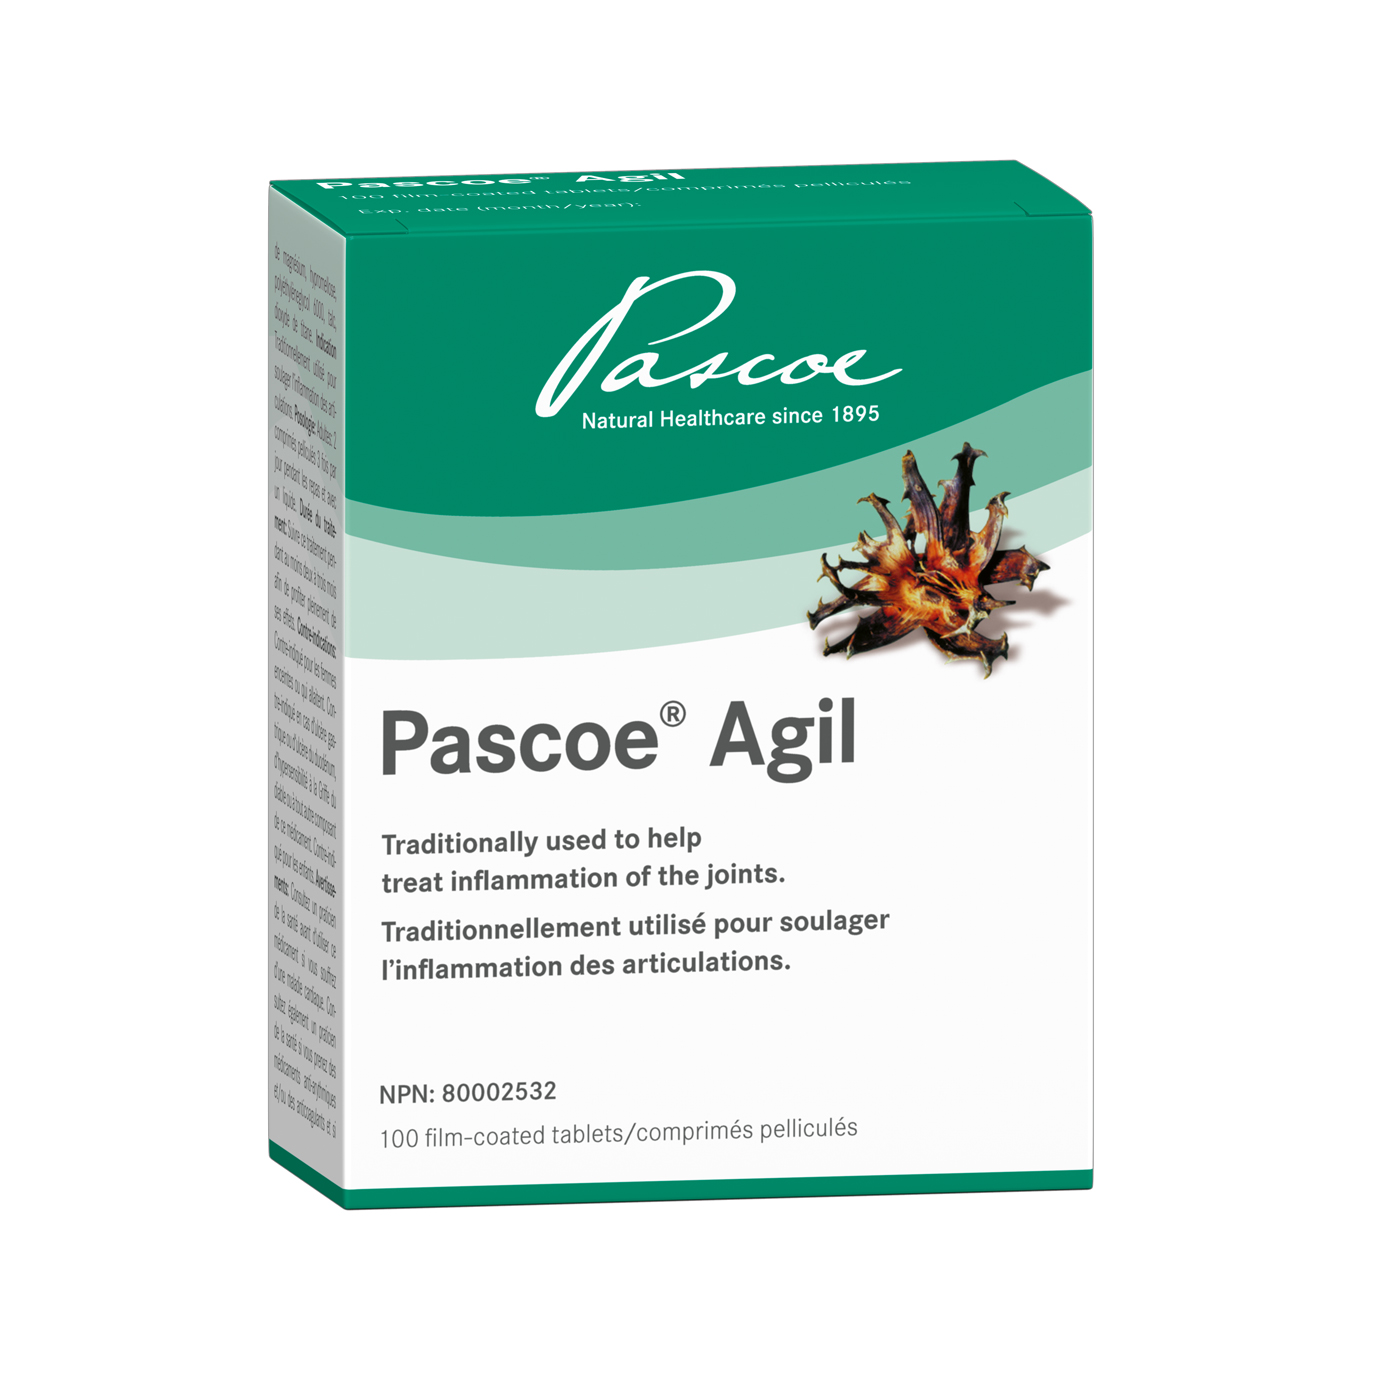 Pascoe - Agil 100 Tablets 240mg Devil's Claw Extract